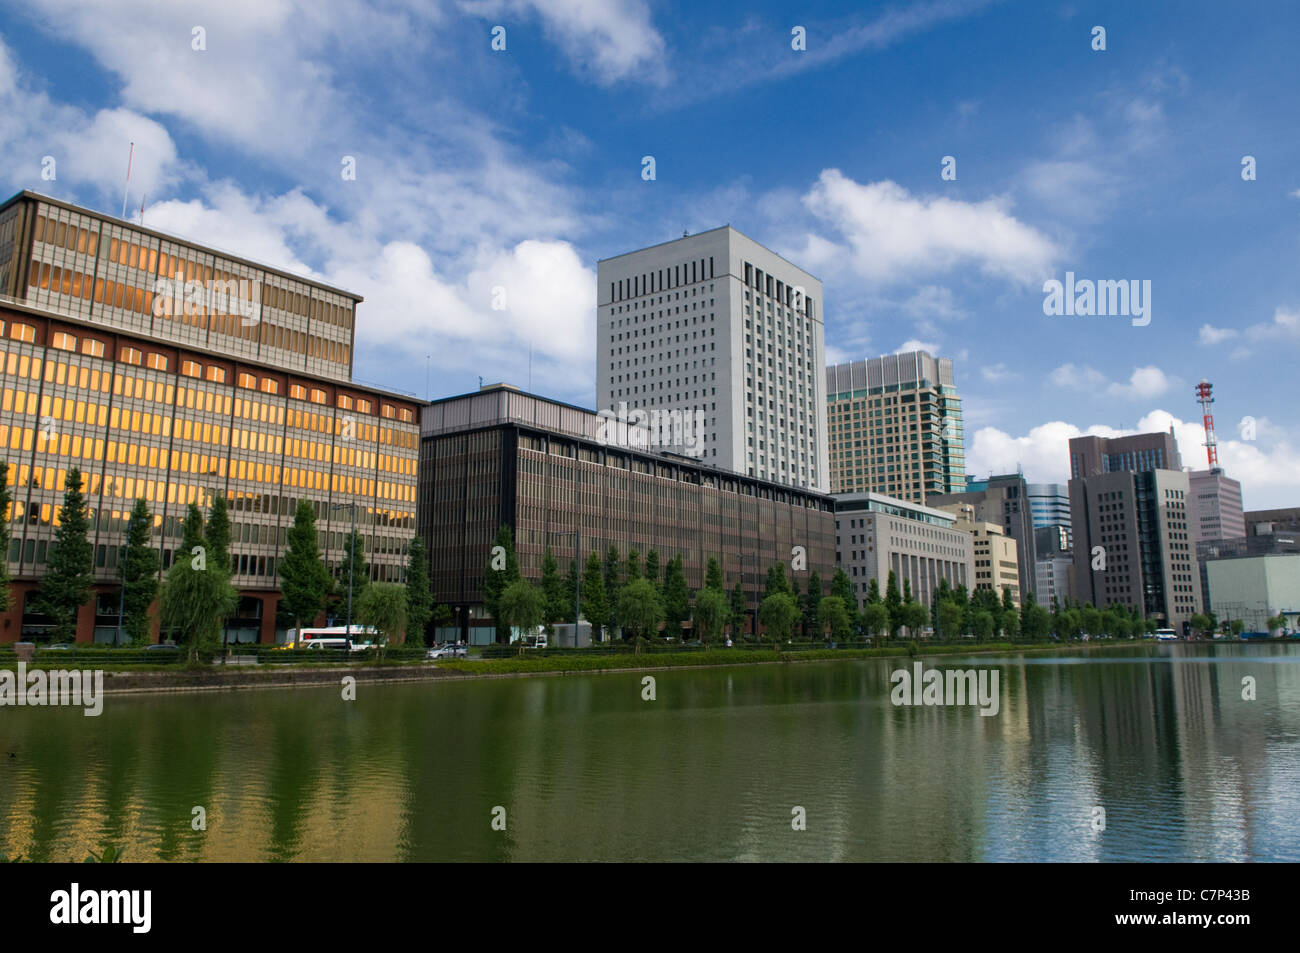 Central Business District Tokyo around the Imperial Palace Moat Japan - Stock Image